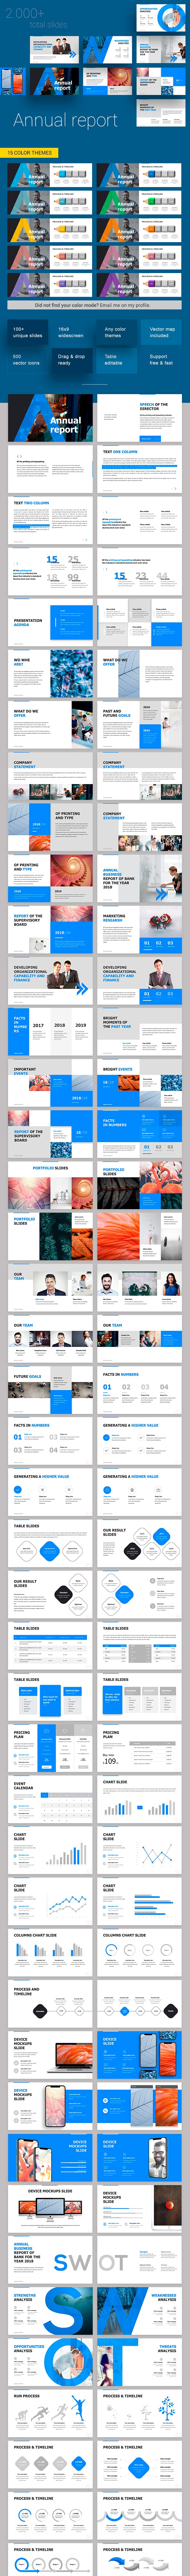 Annual Report Powerpoint - Finance PowerPoint Templates